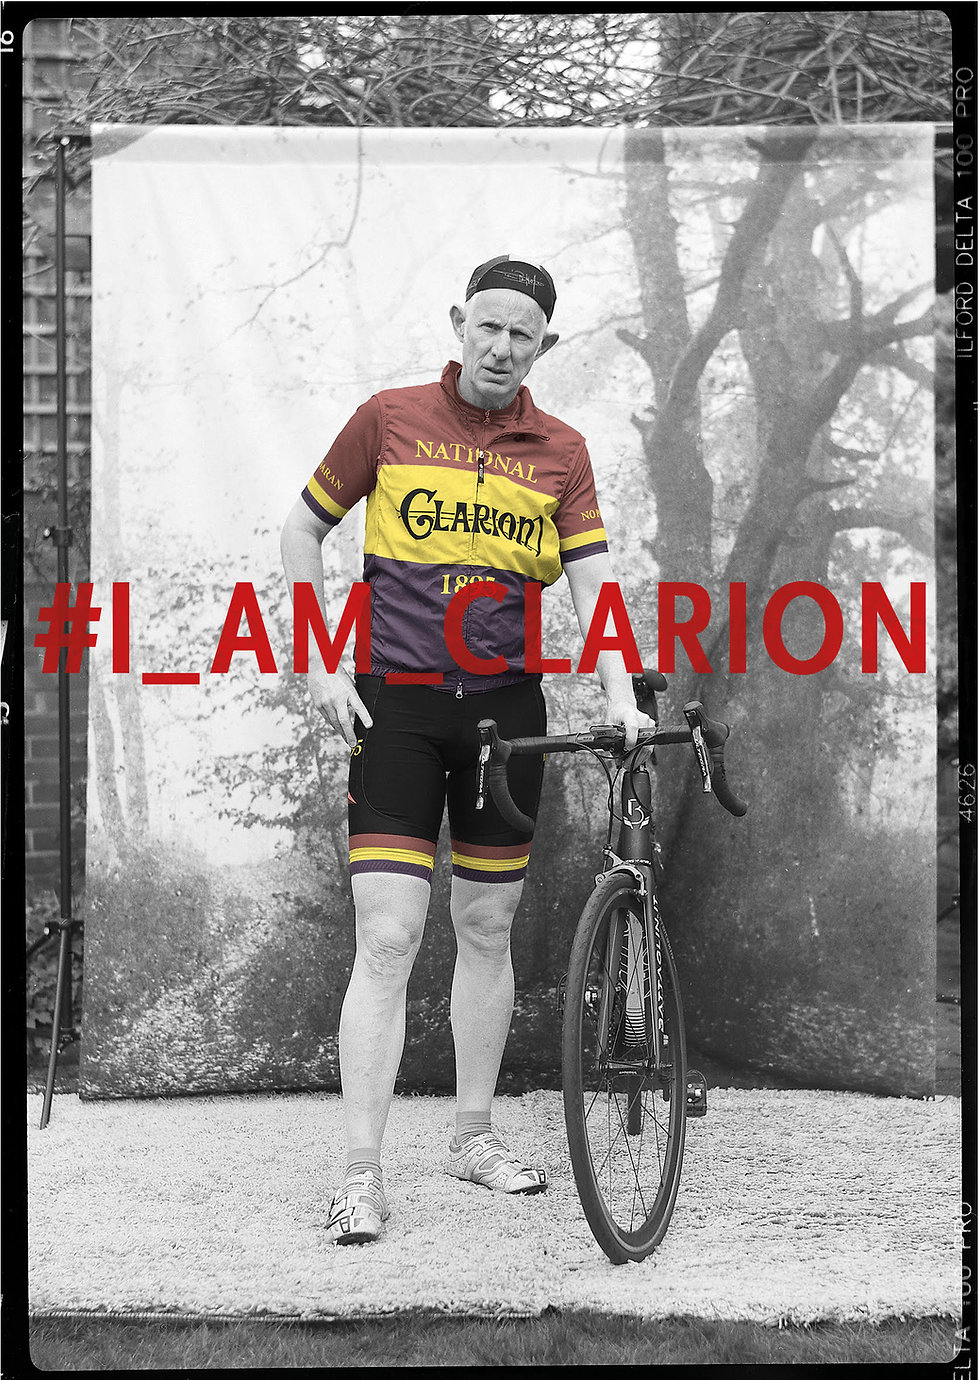 NationalClarionCyclingClub1895IAMCLARION.jpg